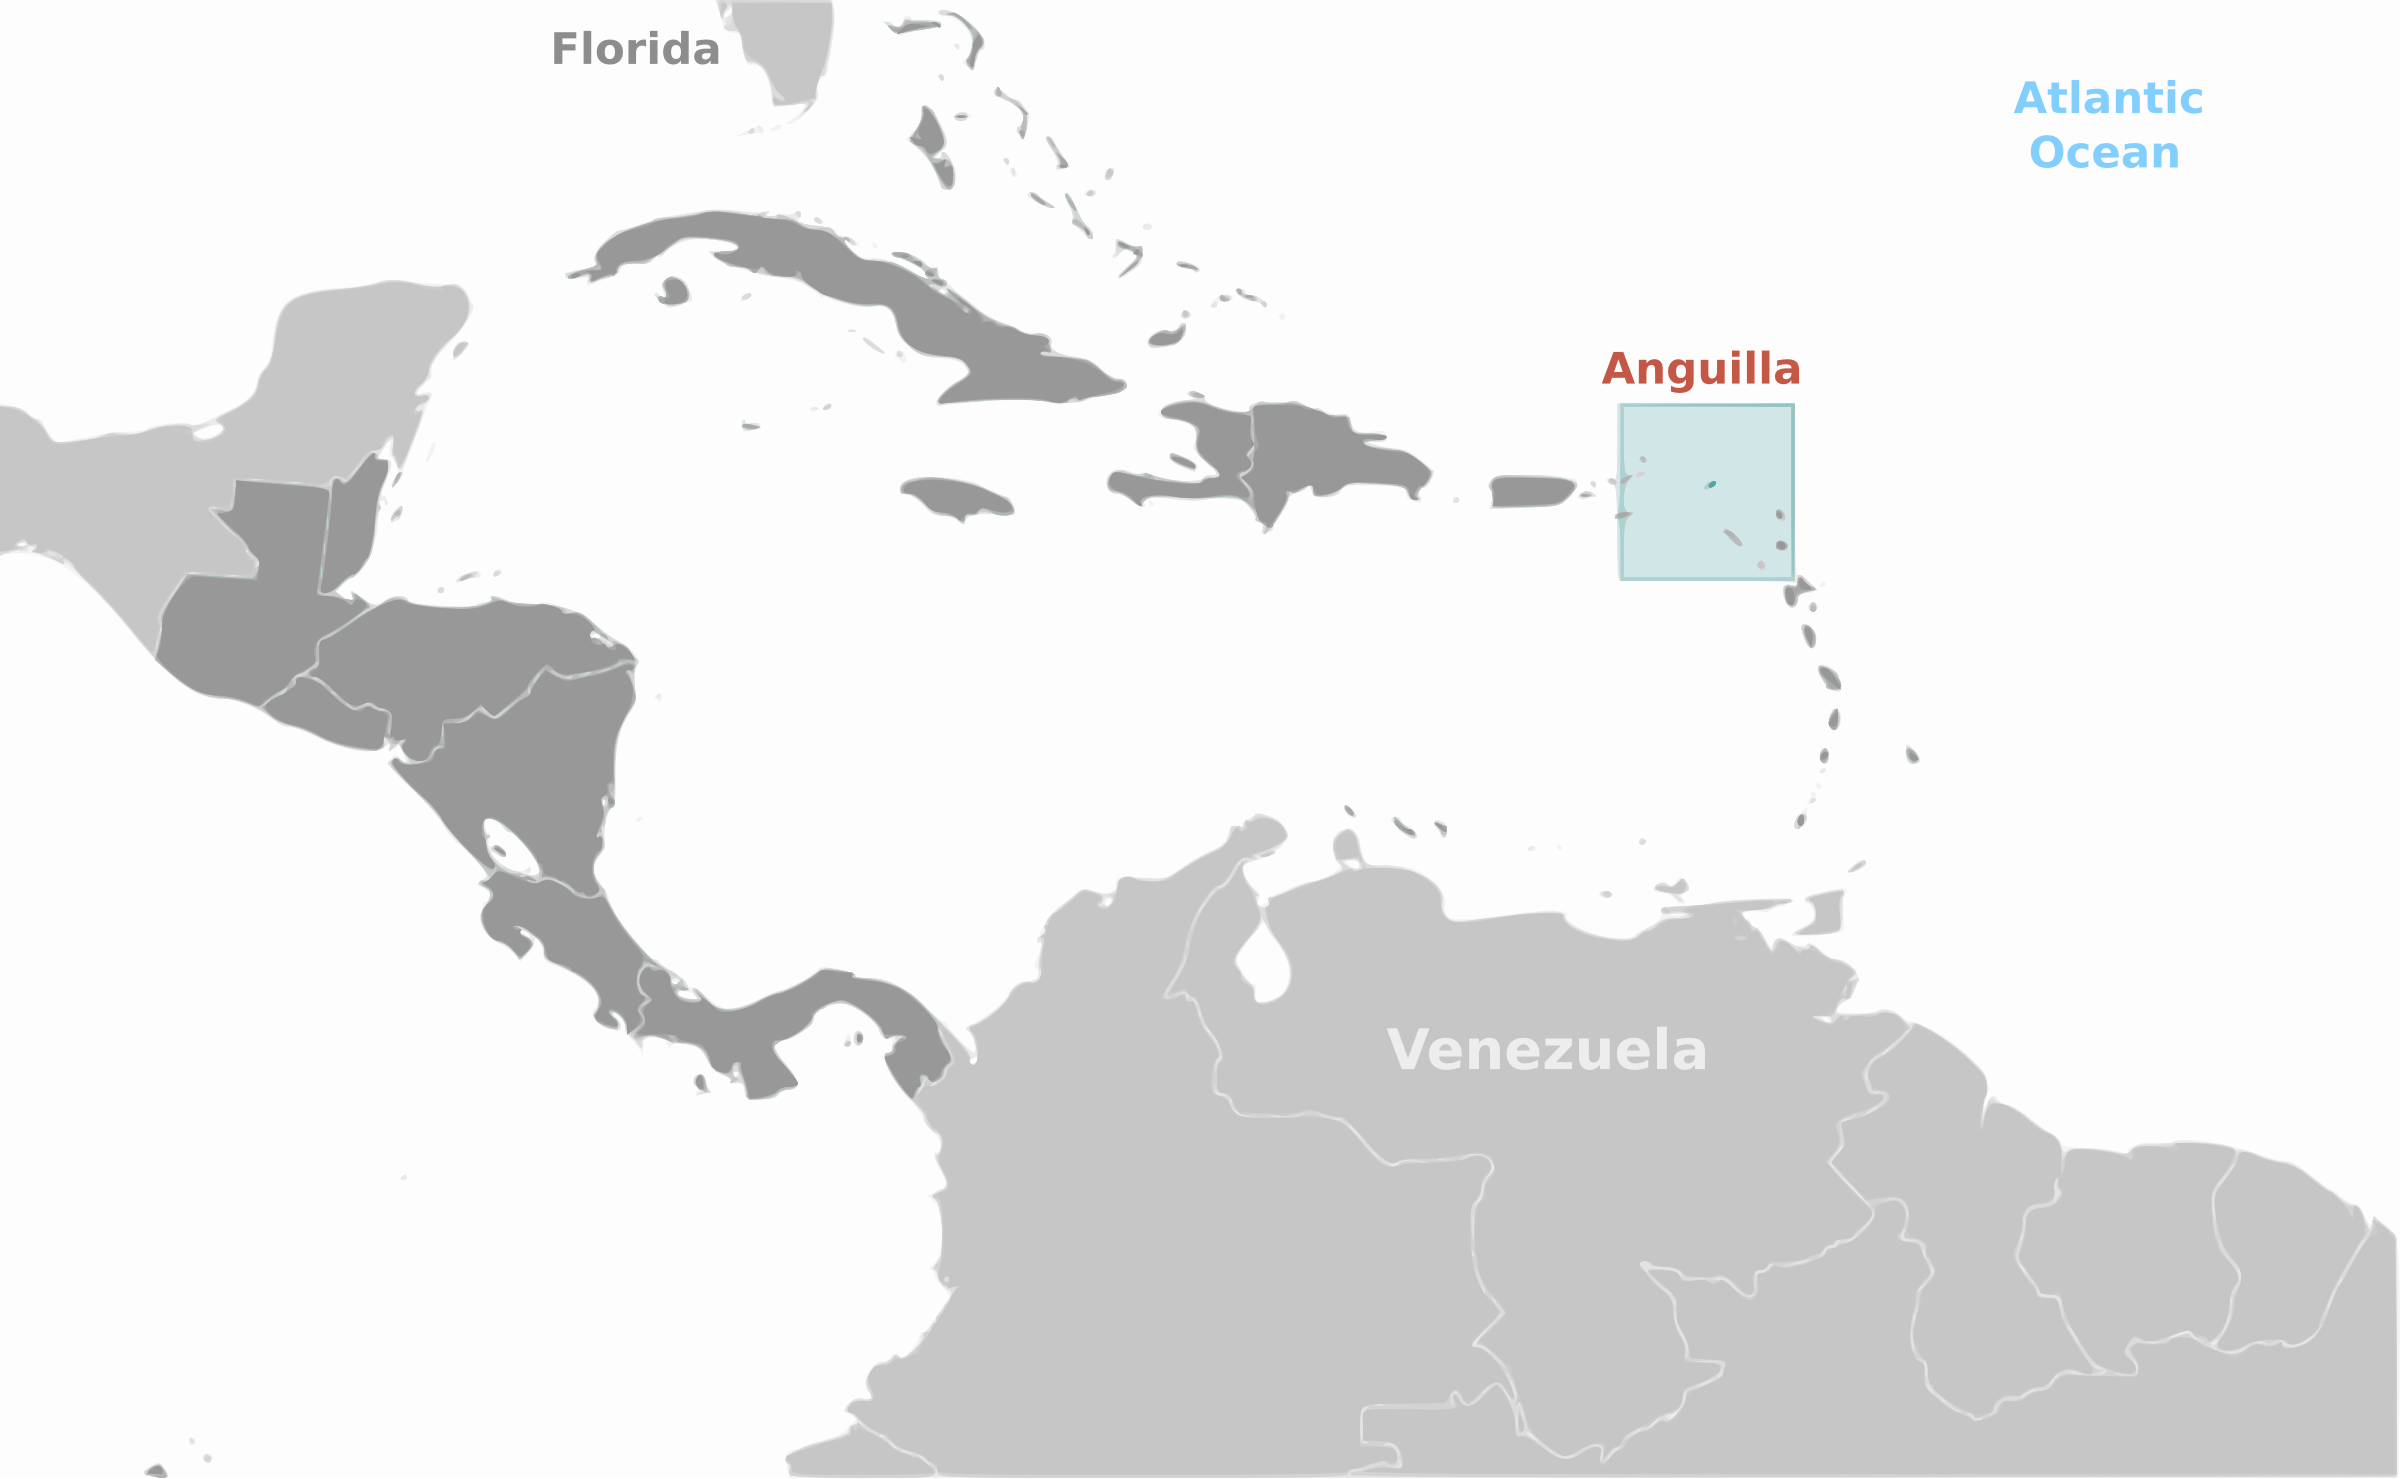 Anguilla location label by wpclipart